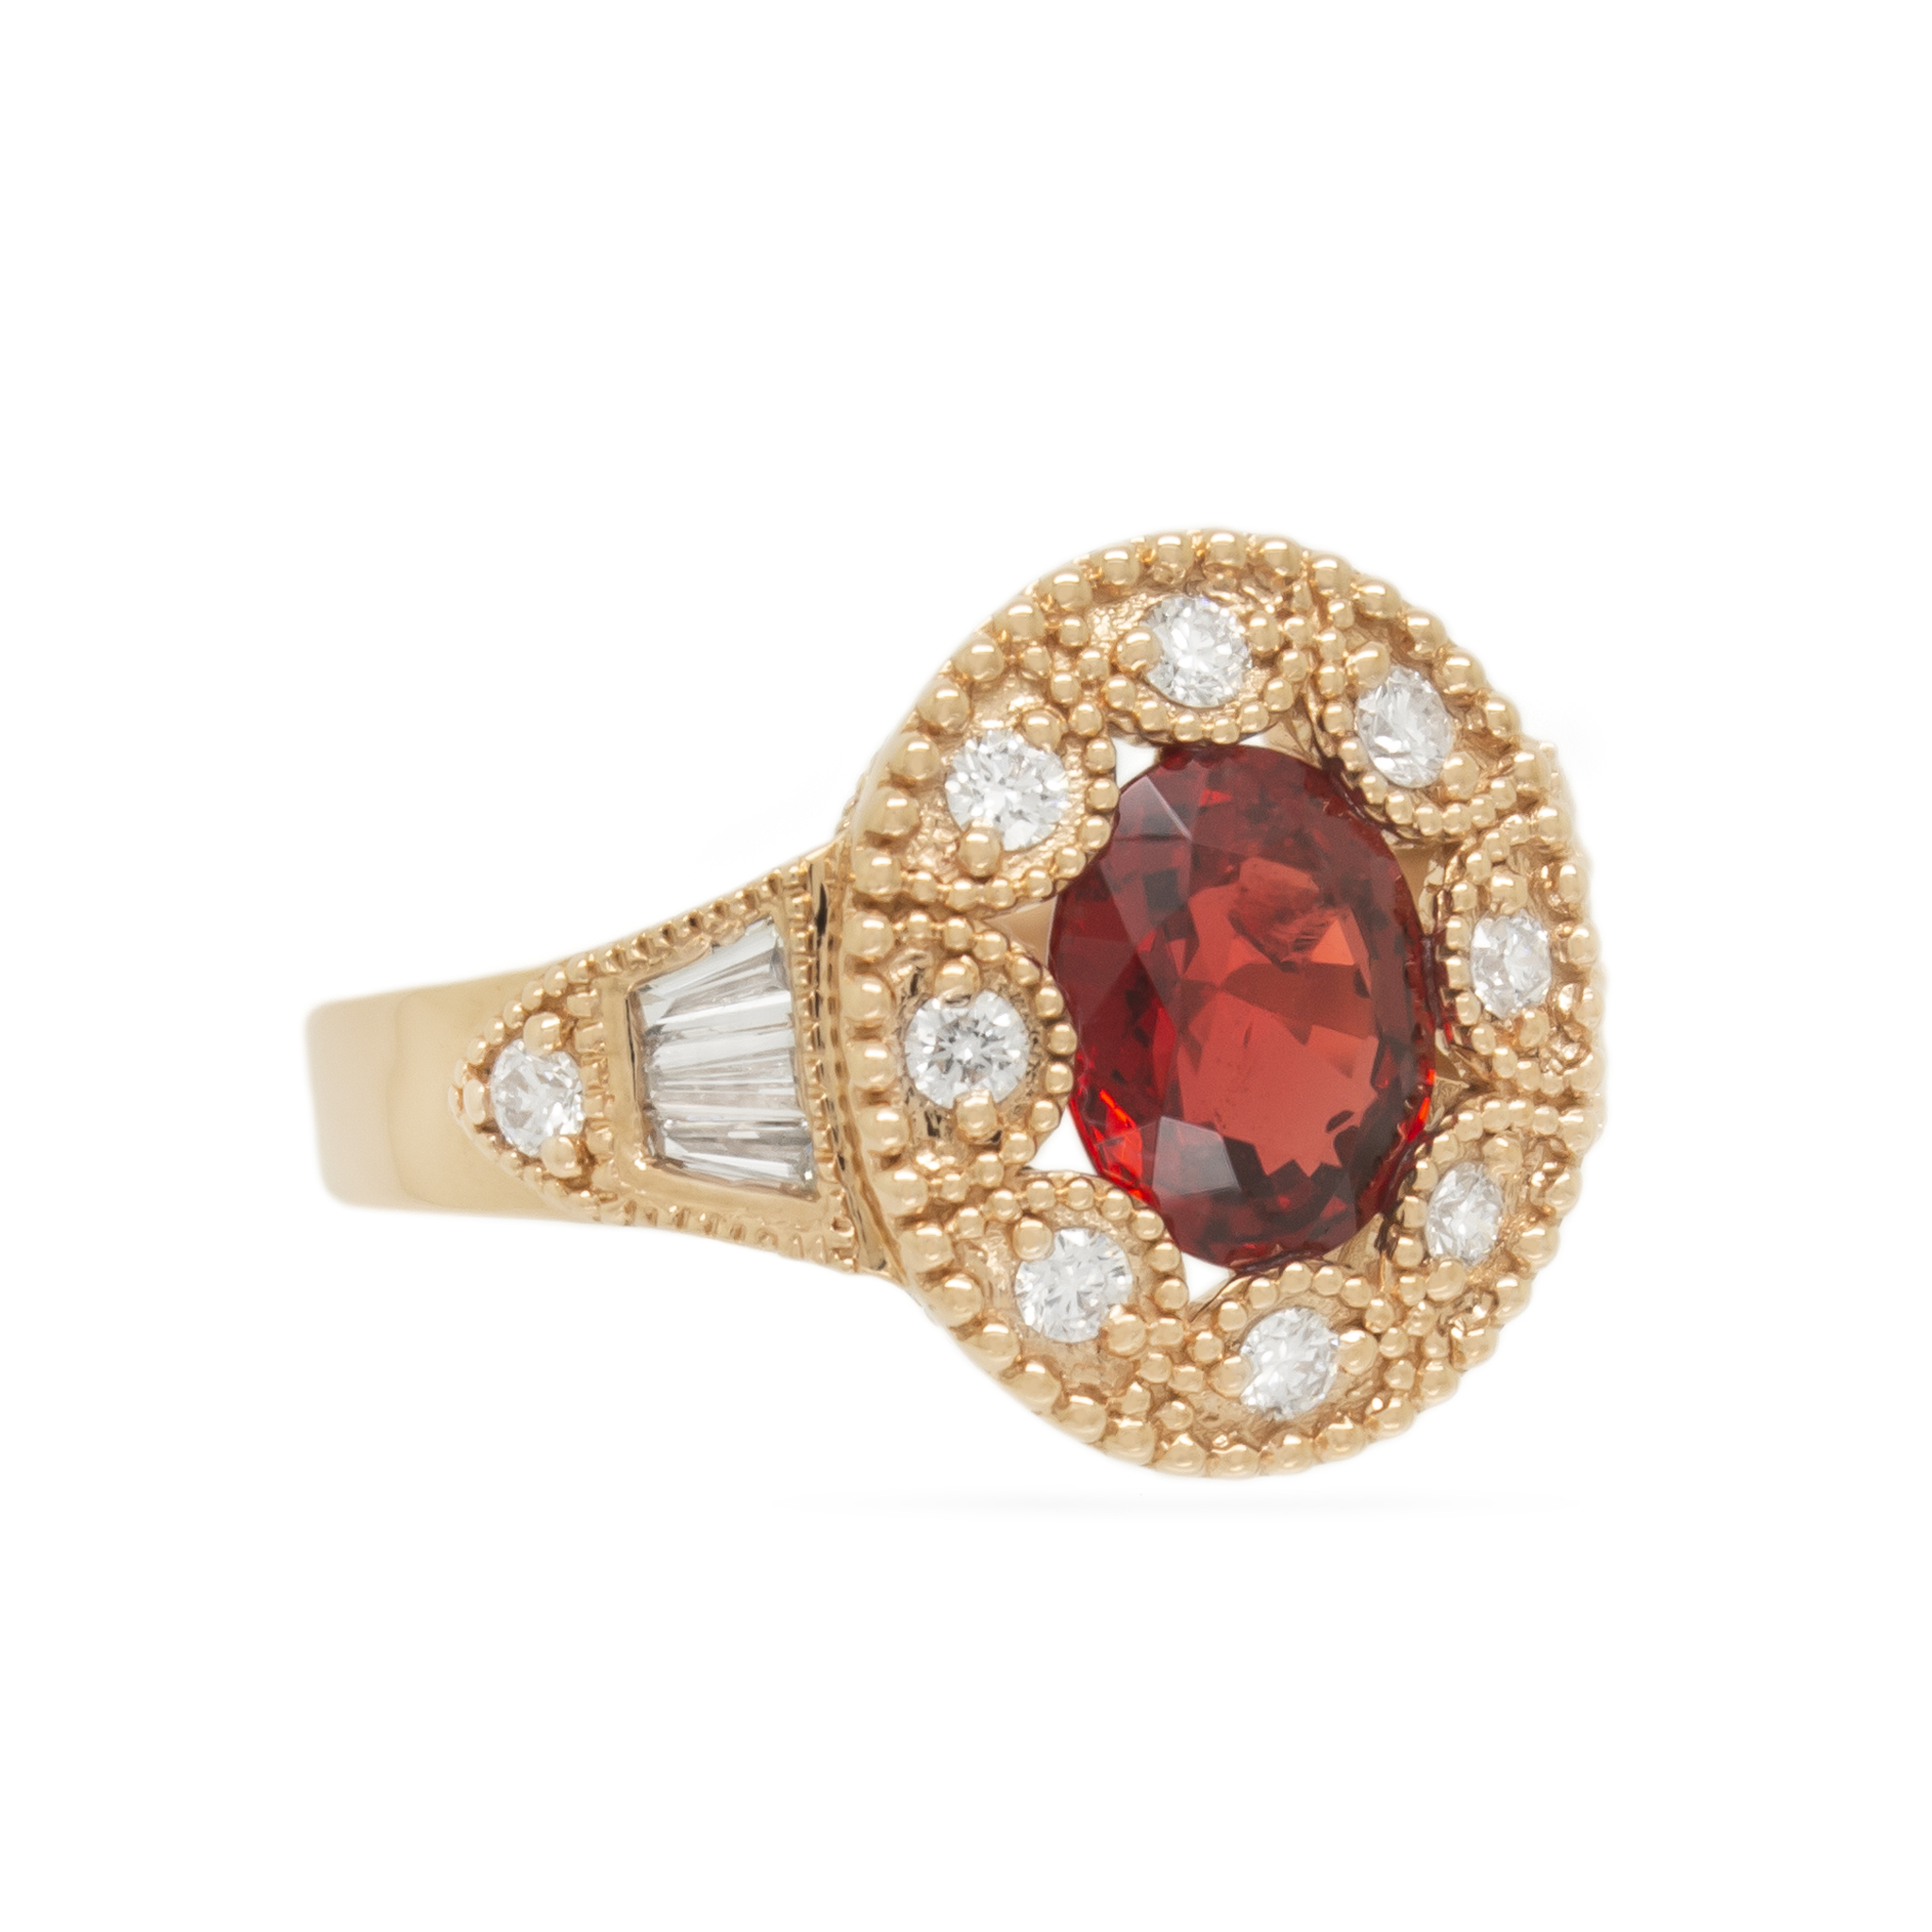 Vintage-inspired Red Spinel Engagement R